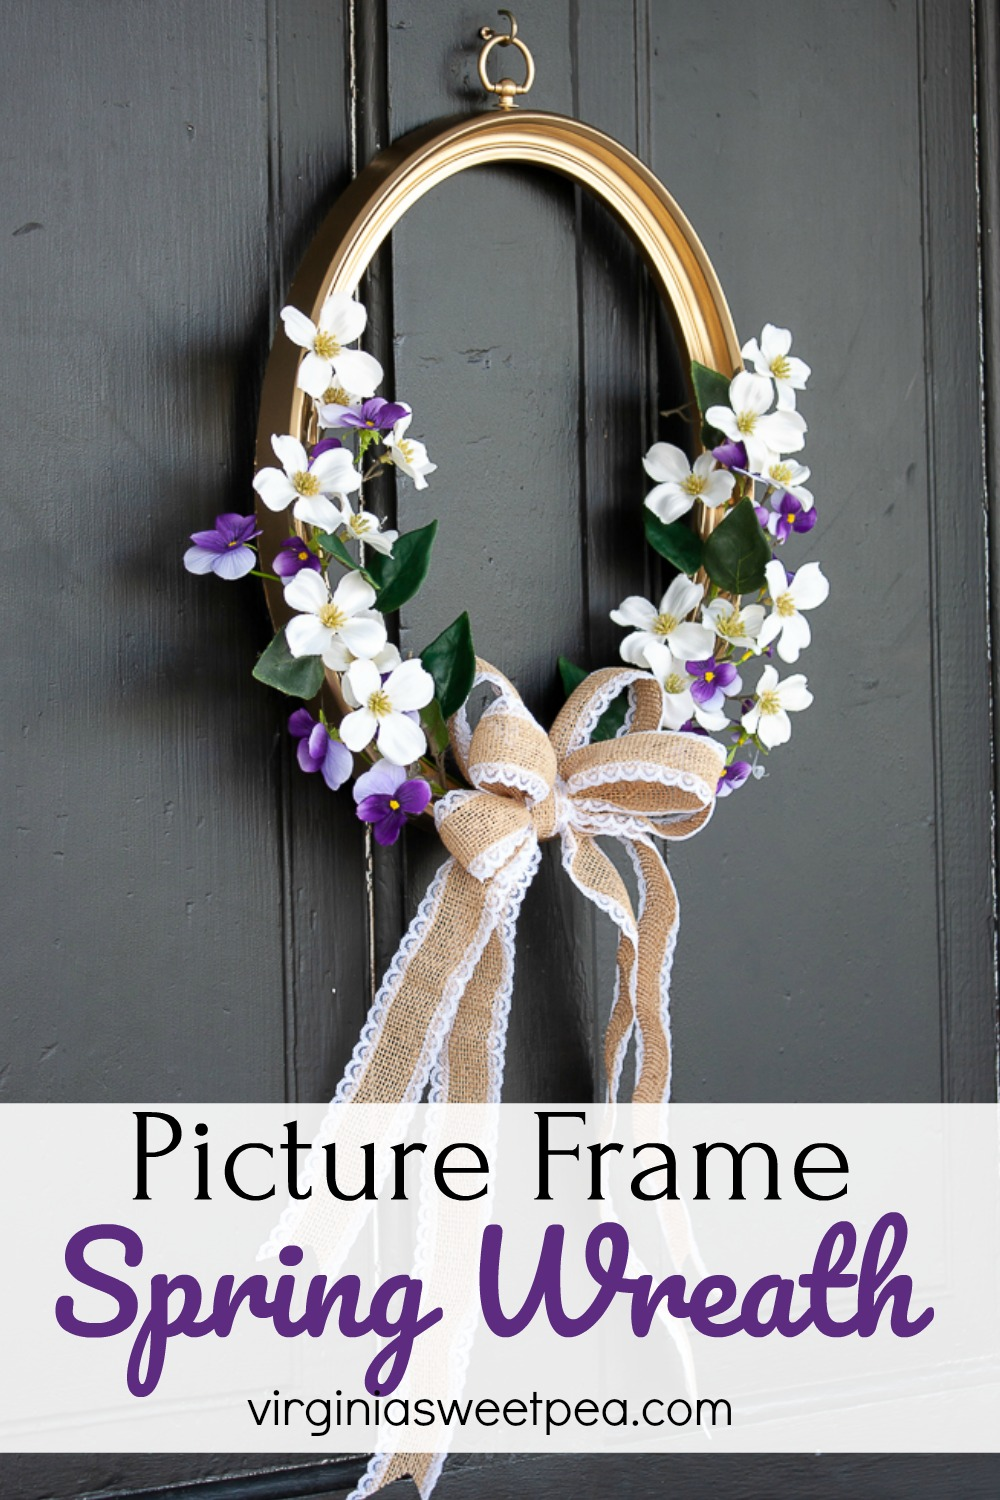 Picture Frame Spring Wreath - Use a picture frame to make a wreath for your home for spring. #springwreath #upcycledproject #wreath #pictureframewreath via @spaula